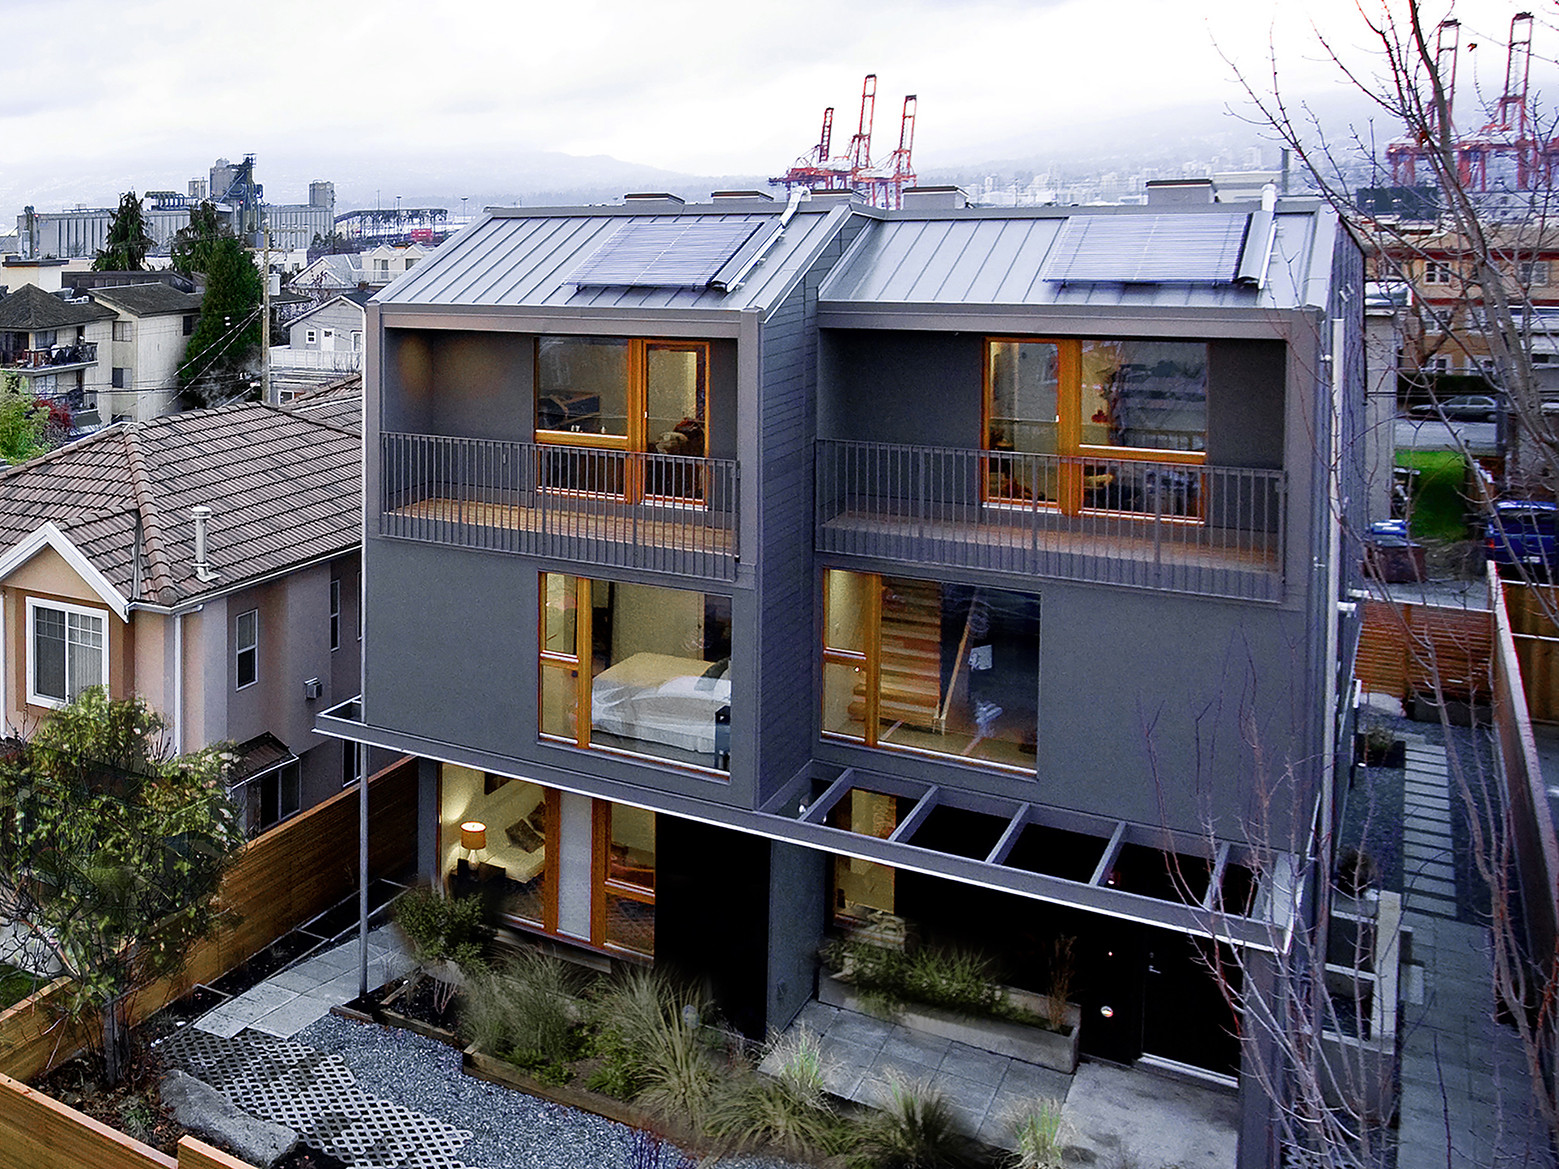 Ecological Densification Four  Townhouses / SHAPE Architecture, Courtesy of SHAPE Architecture